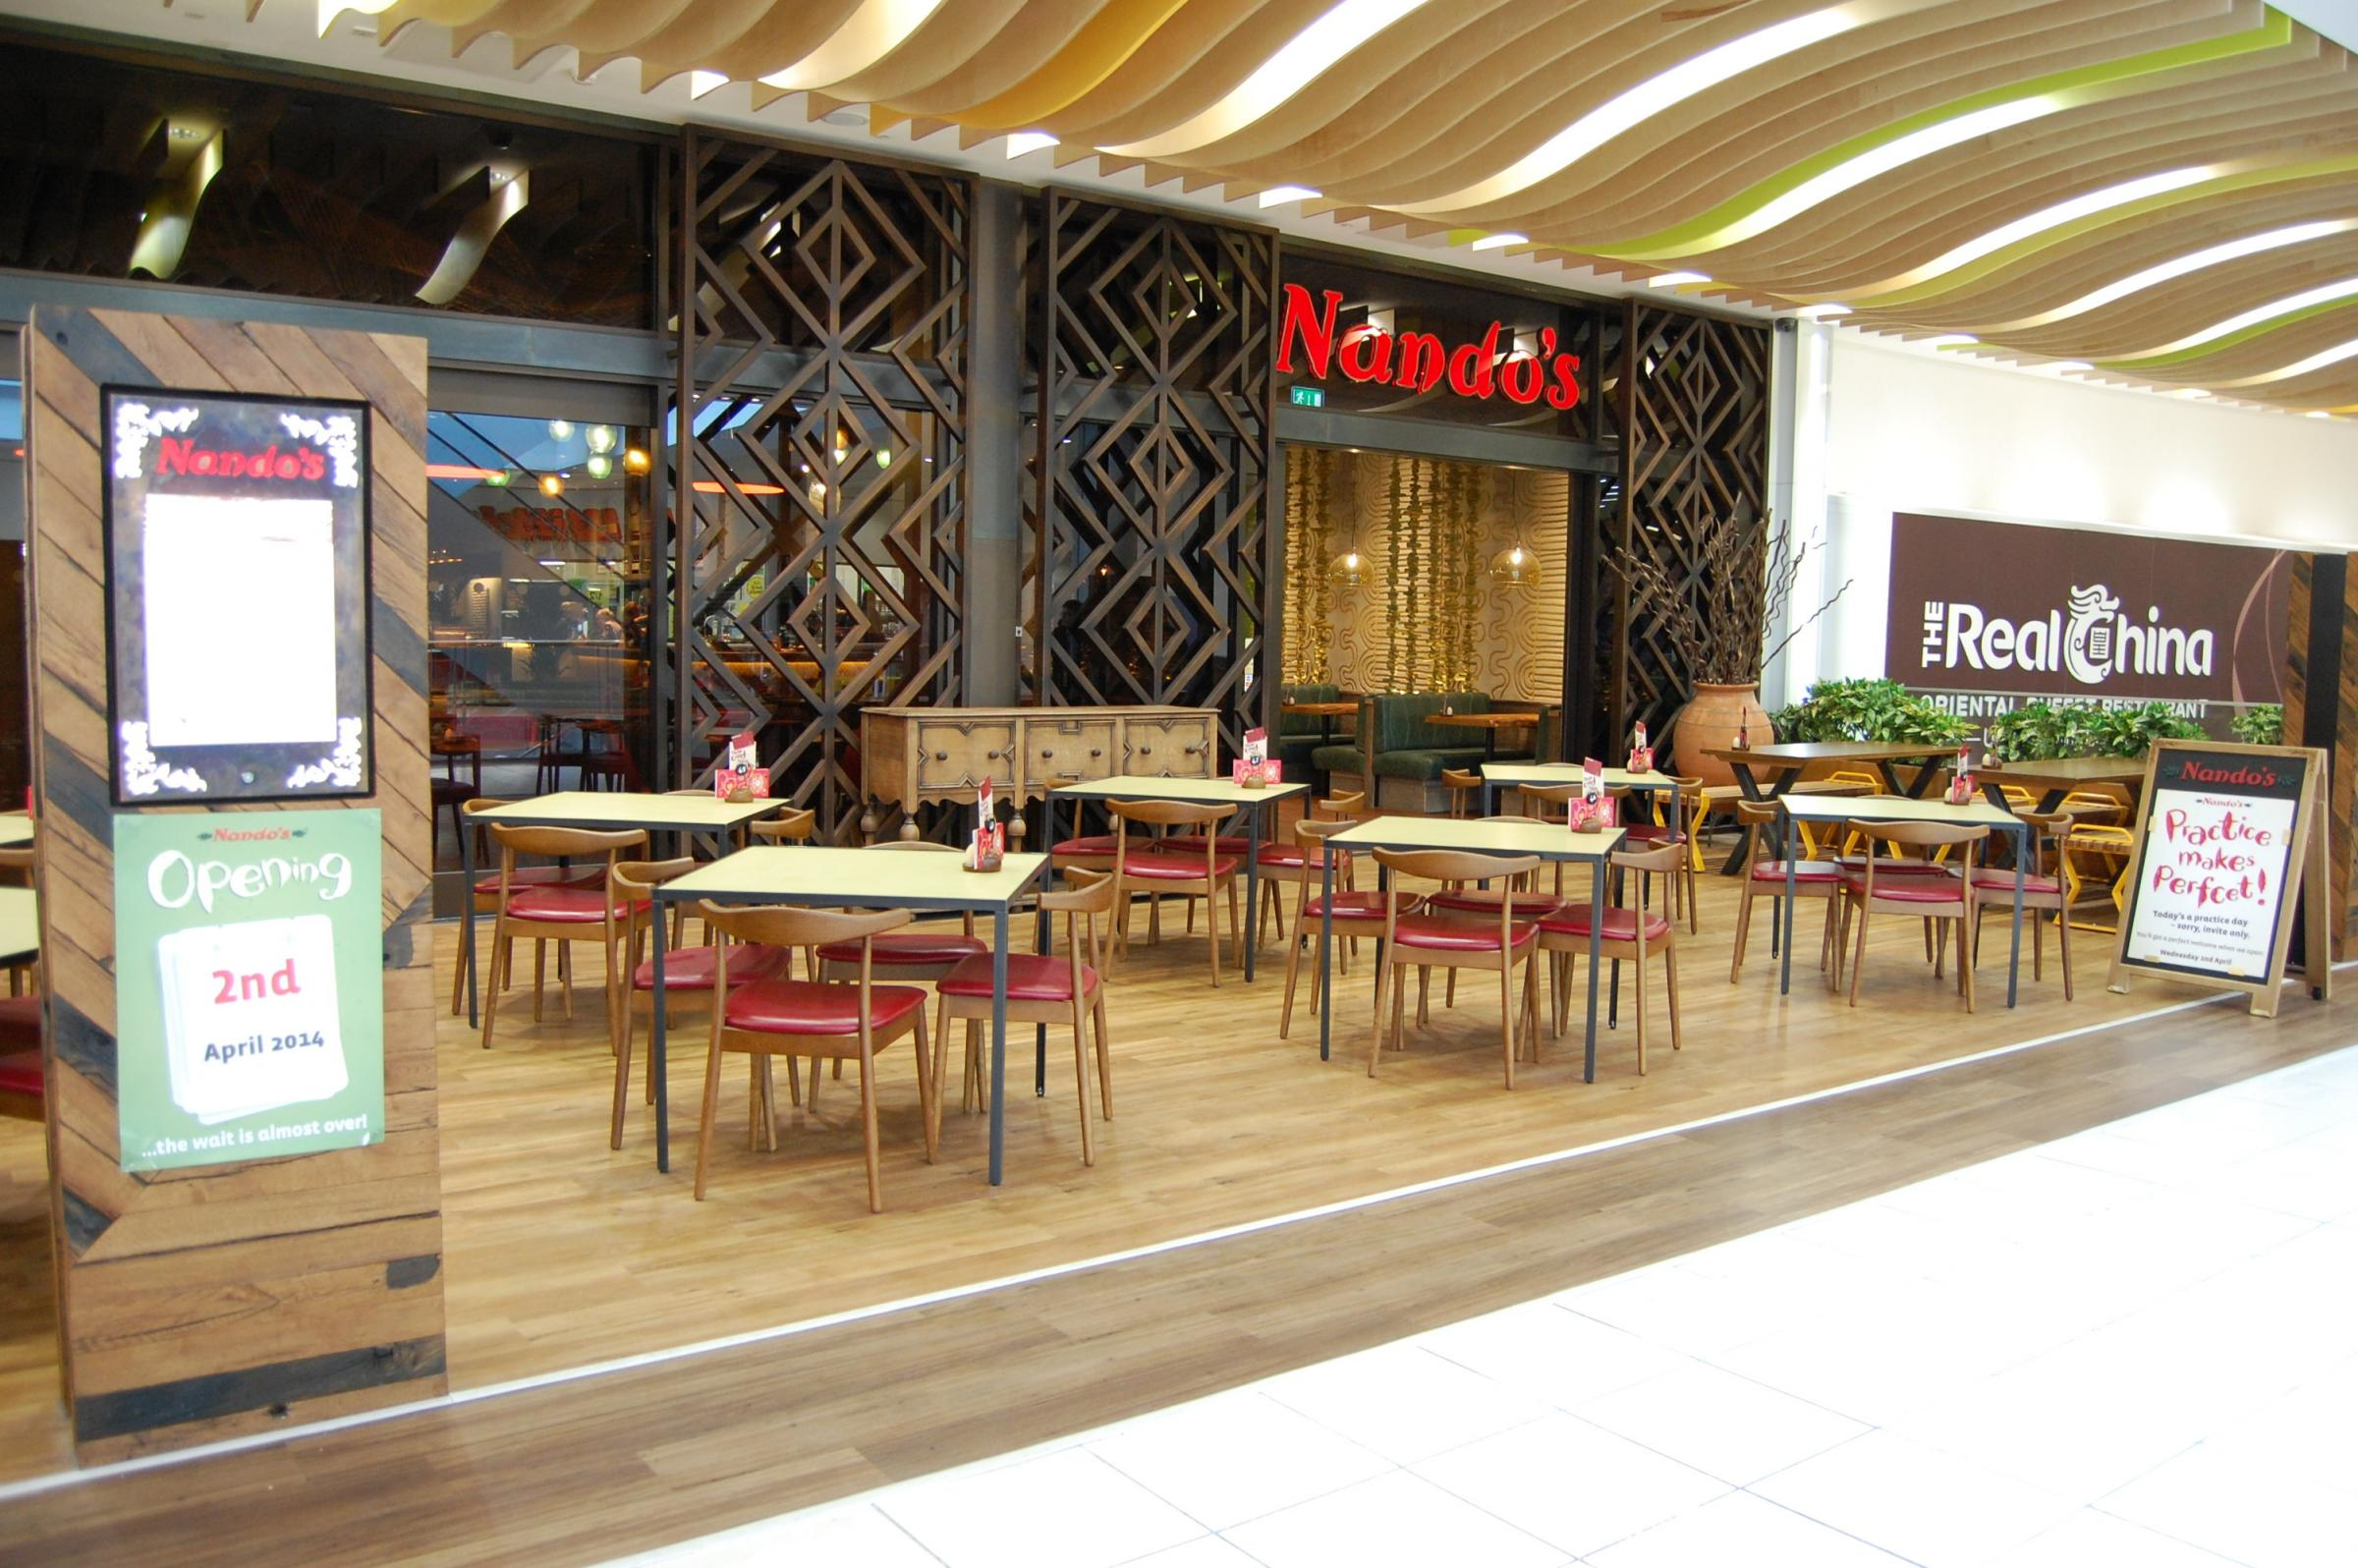 Nandos - the home of legendary Portuguese flame-grilled PERi-PERi chicken opens its doors today.